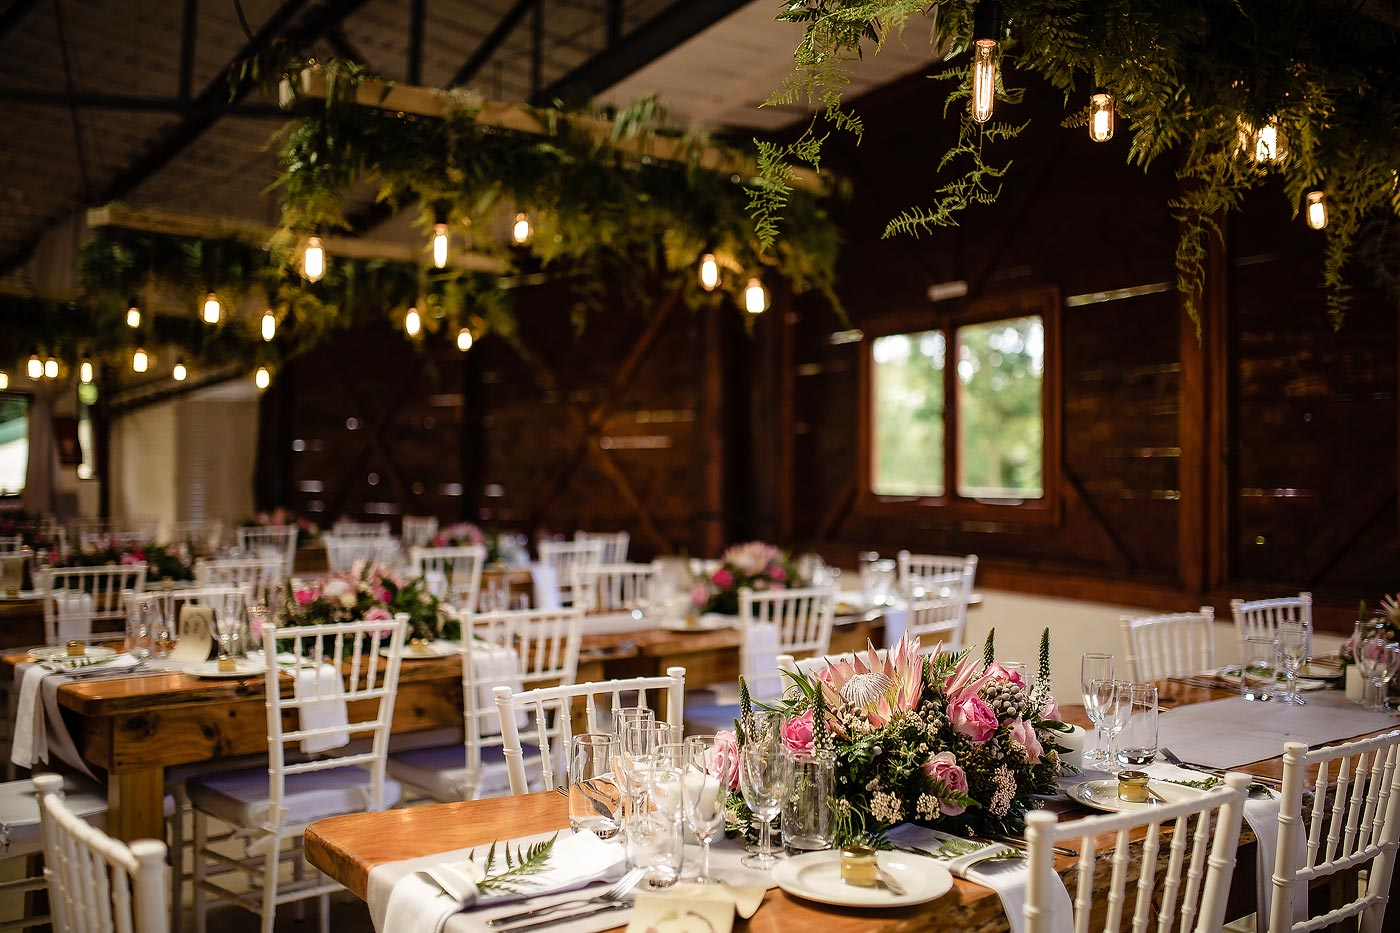 Rustic Wedding decor in a barn with roses and ferns and naked bulbs.